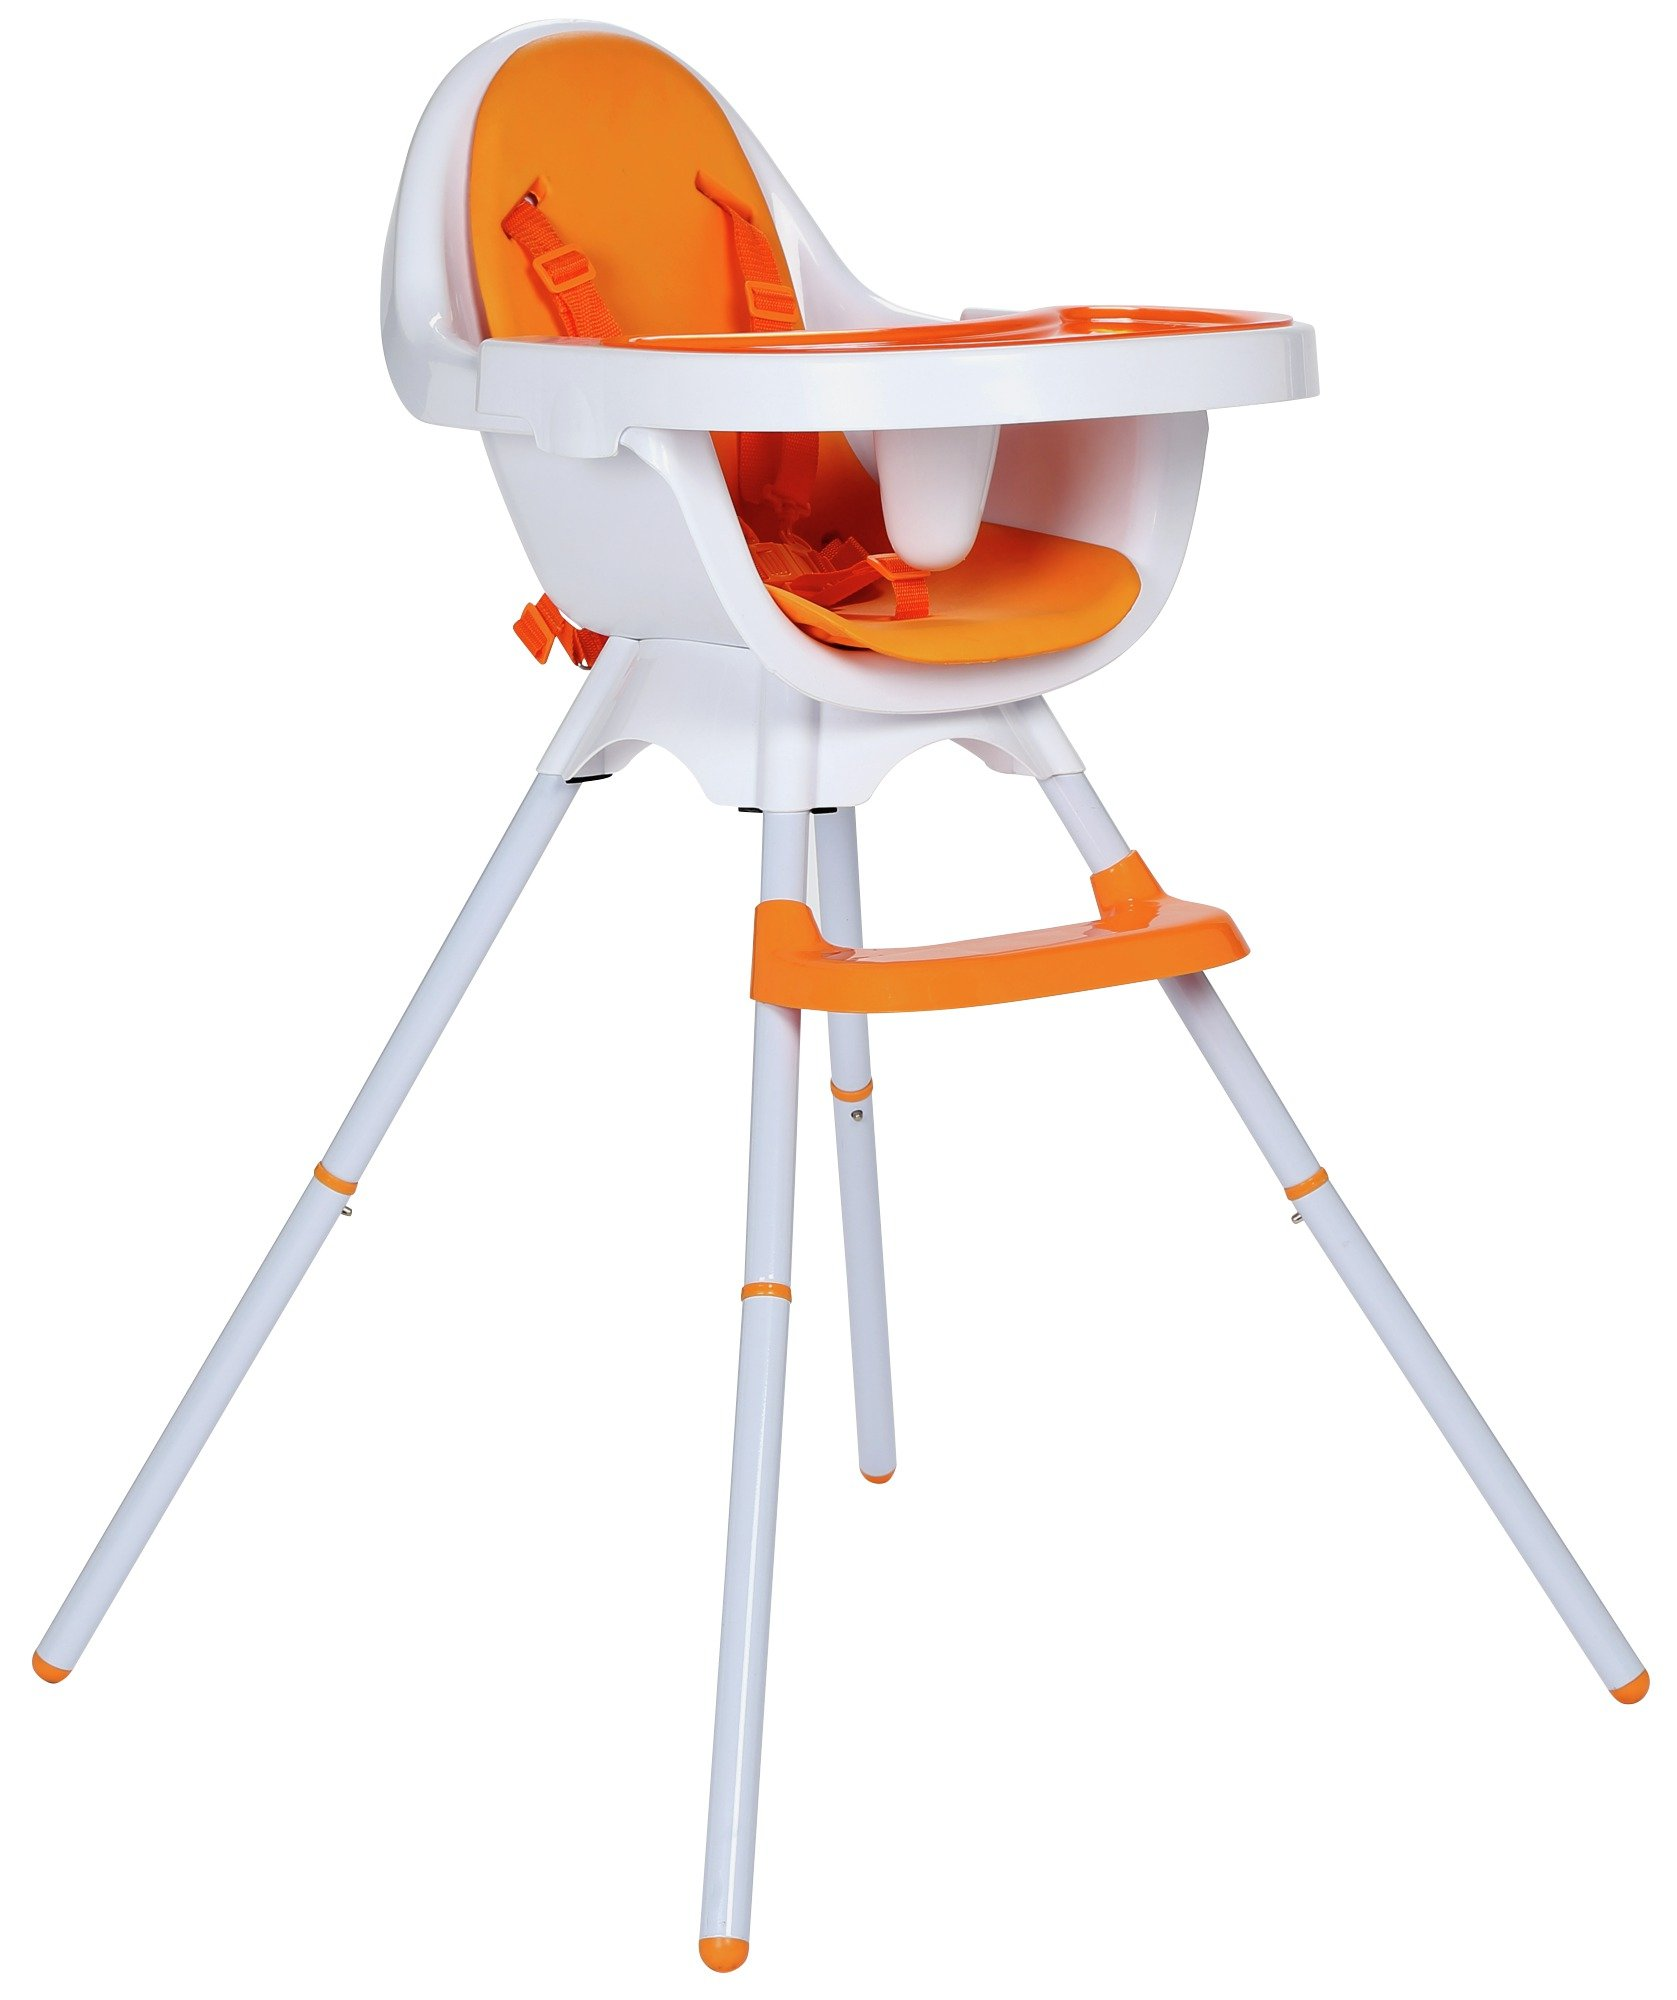 Cuggl Carrot 2 in 1 Highchair